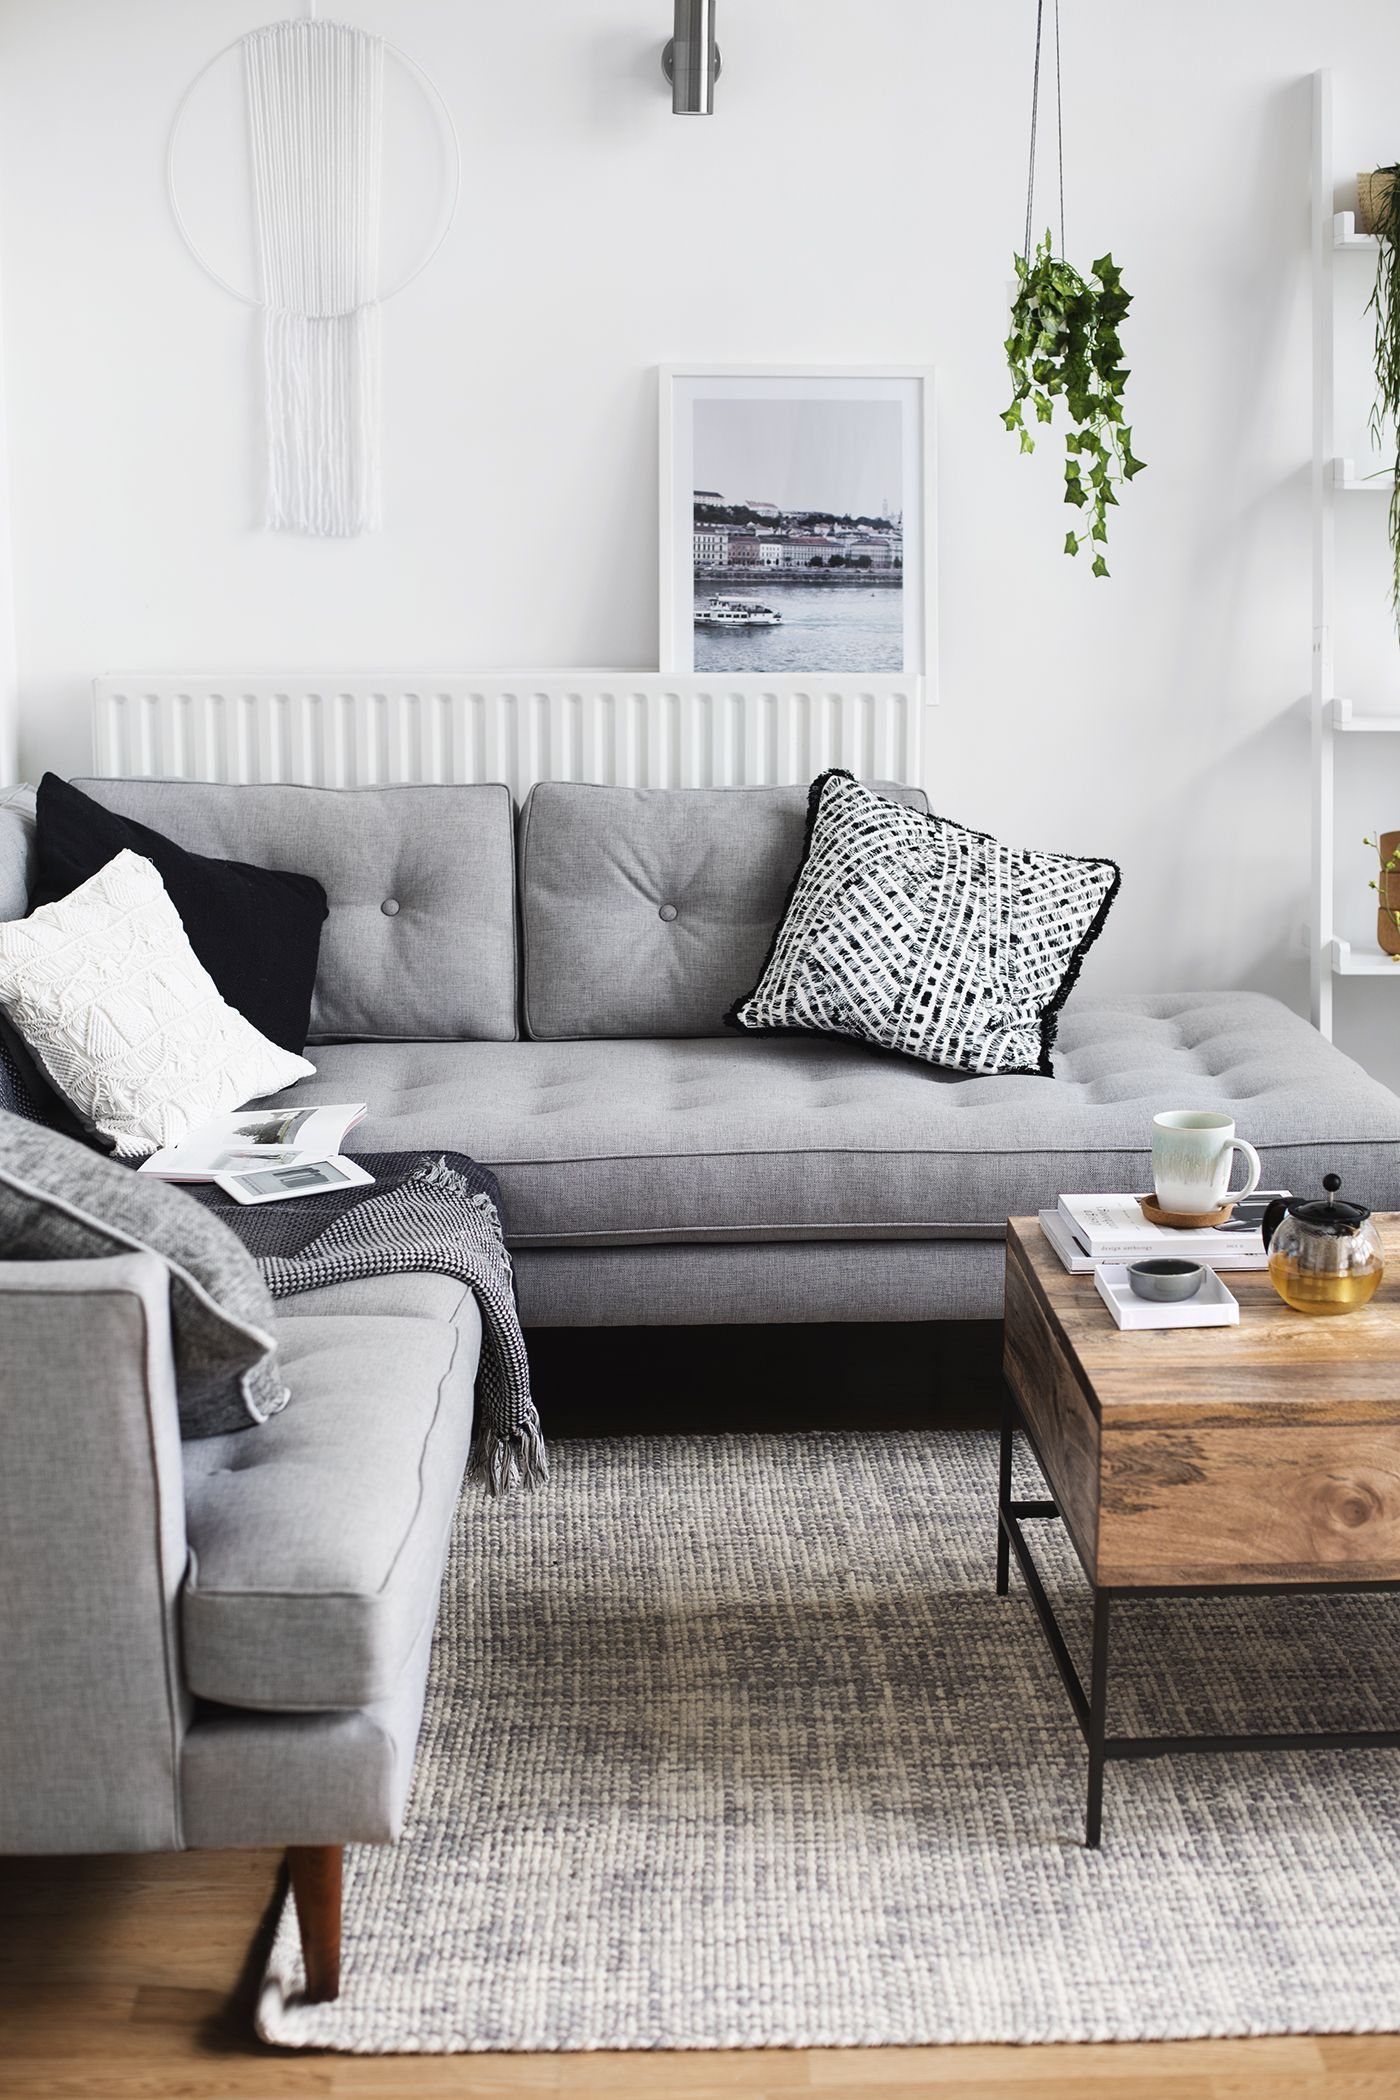 20 Remarkable and Inspiring Grey Living Room